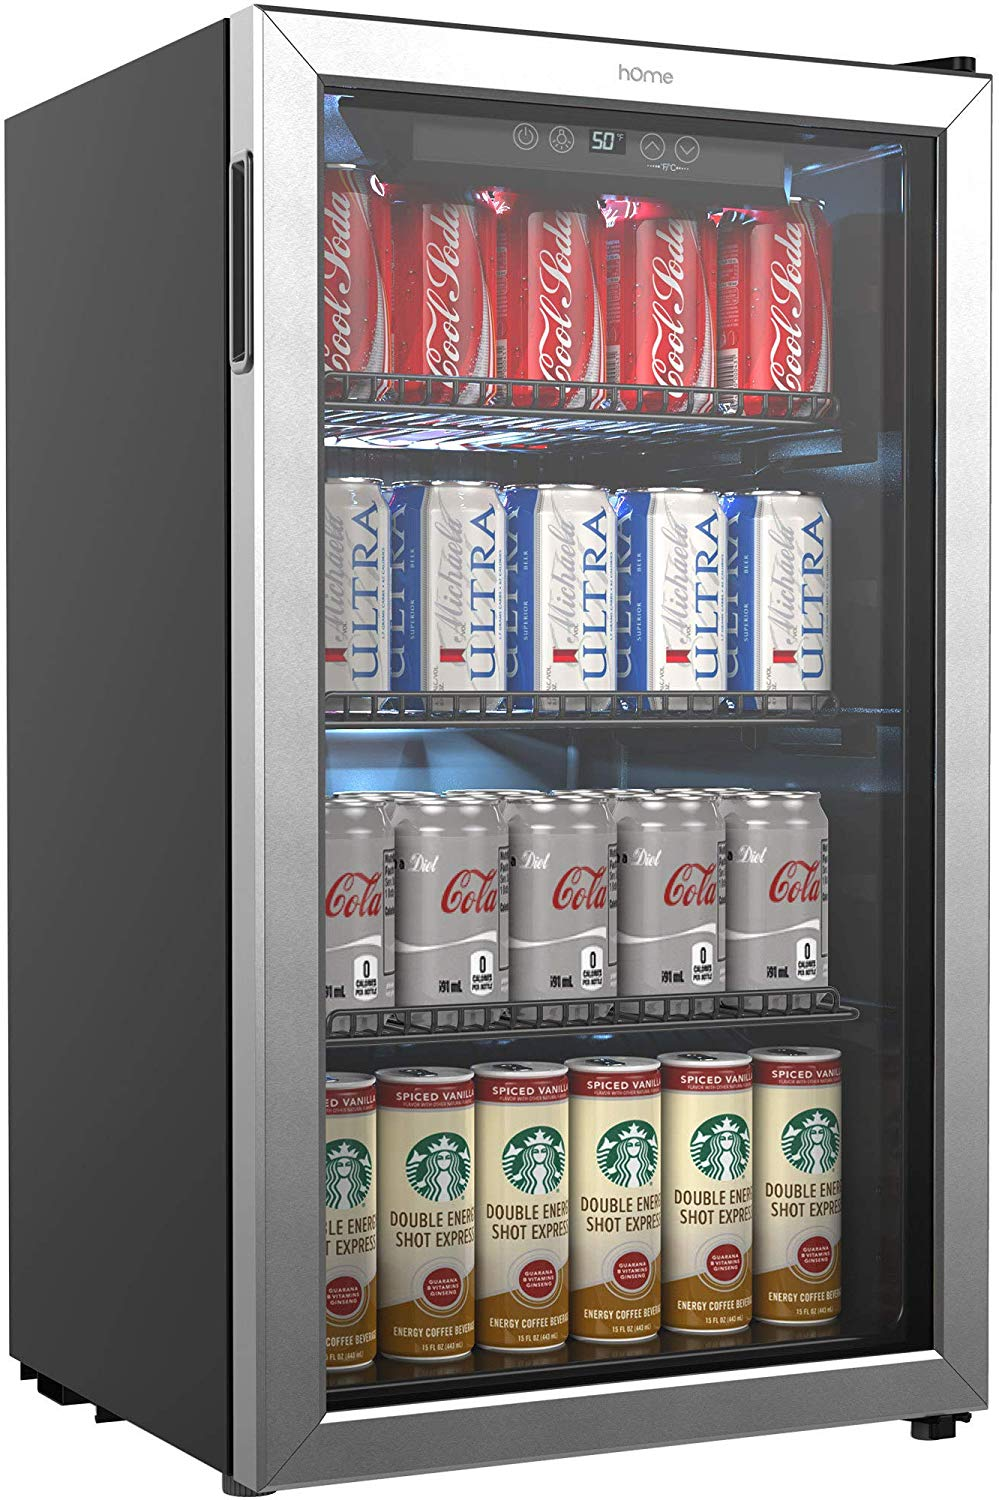 hOmeLabs Beverage Refrigerator and Cooler - 120 Can Mini Fridge with Glass Door for Soda Beer or Wine